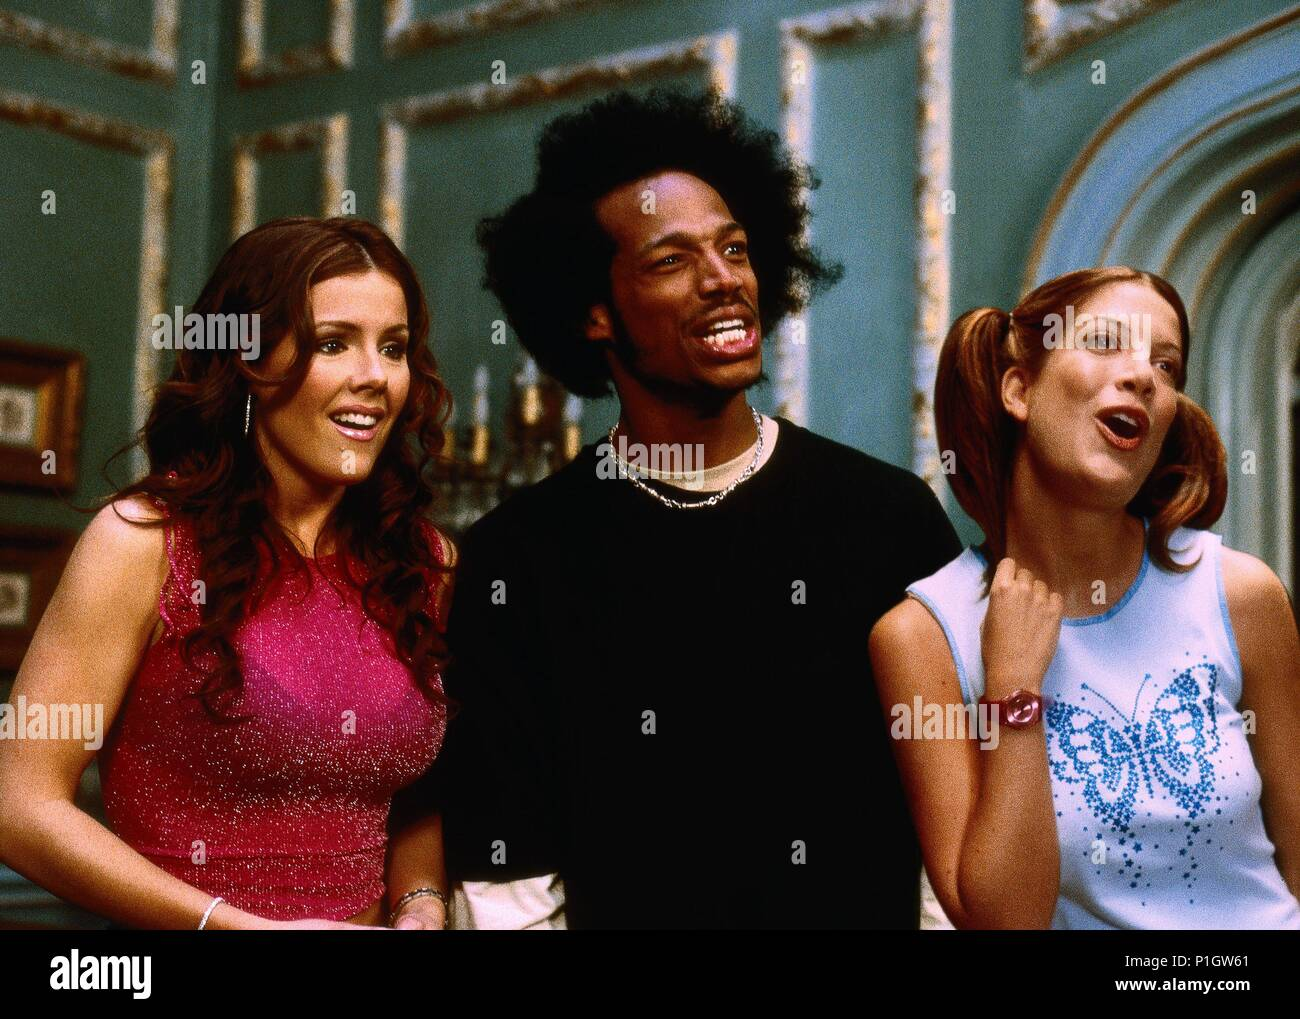 Original Film Title Scary Movie 2 English Title Scary Movie 2 Film Director Keenen Ivory Wayans Year 2001 Stars Marlon Wayans Tori Spelling Kathleen Robertson Copyright Editorial Inside Use Only This Is